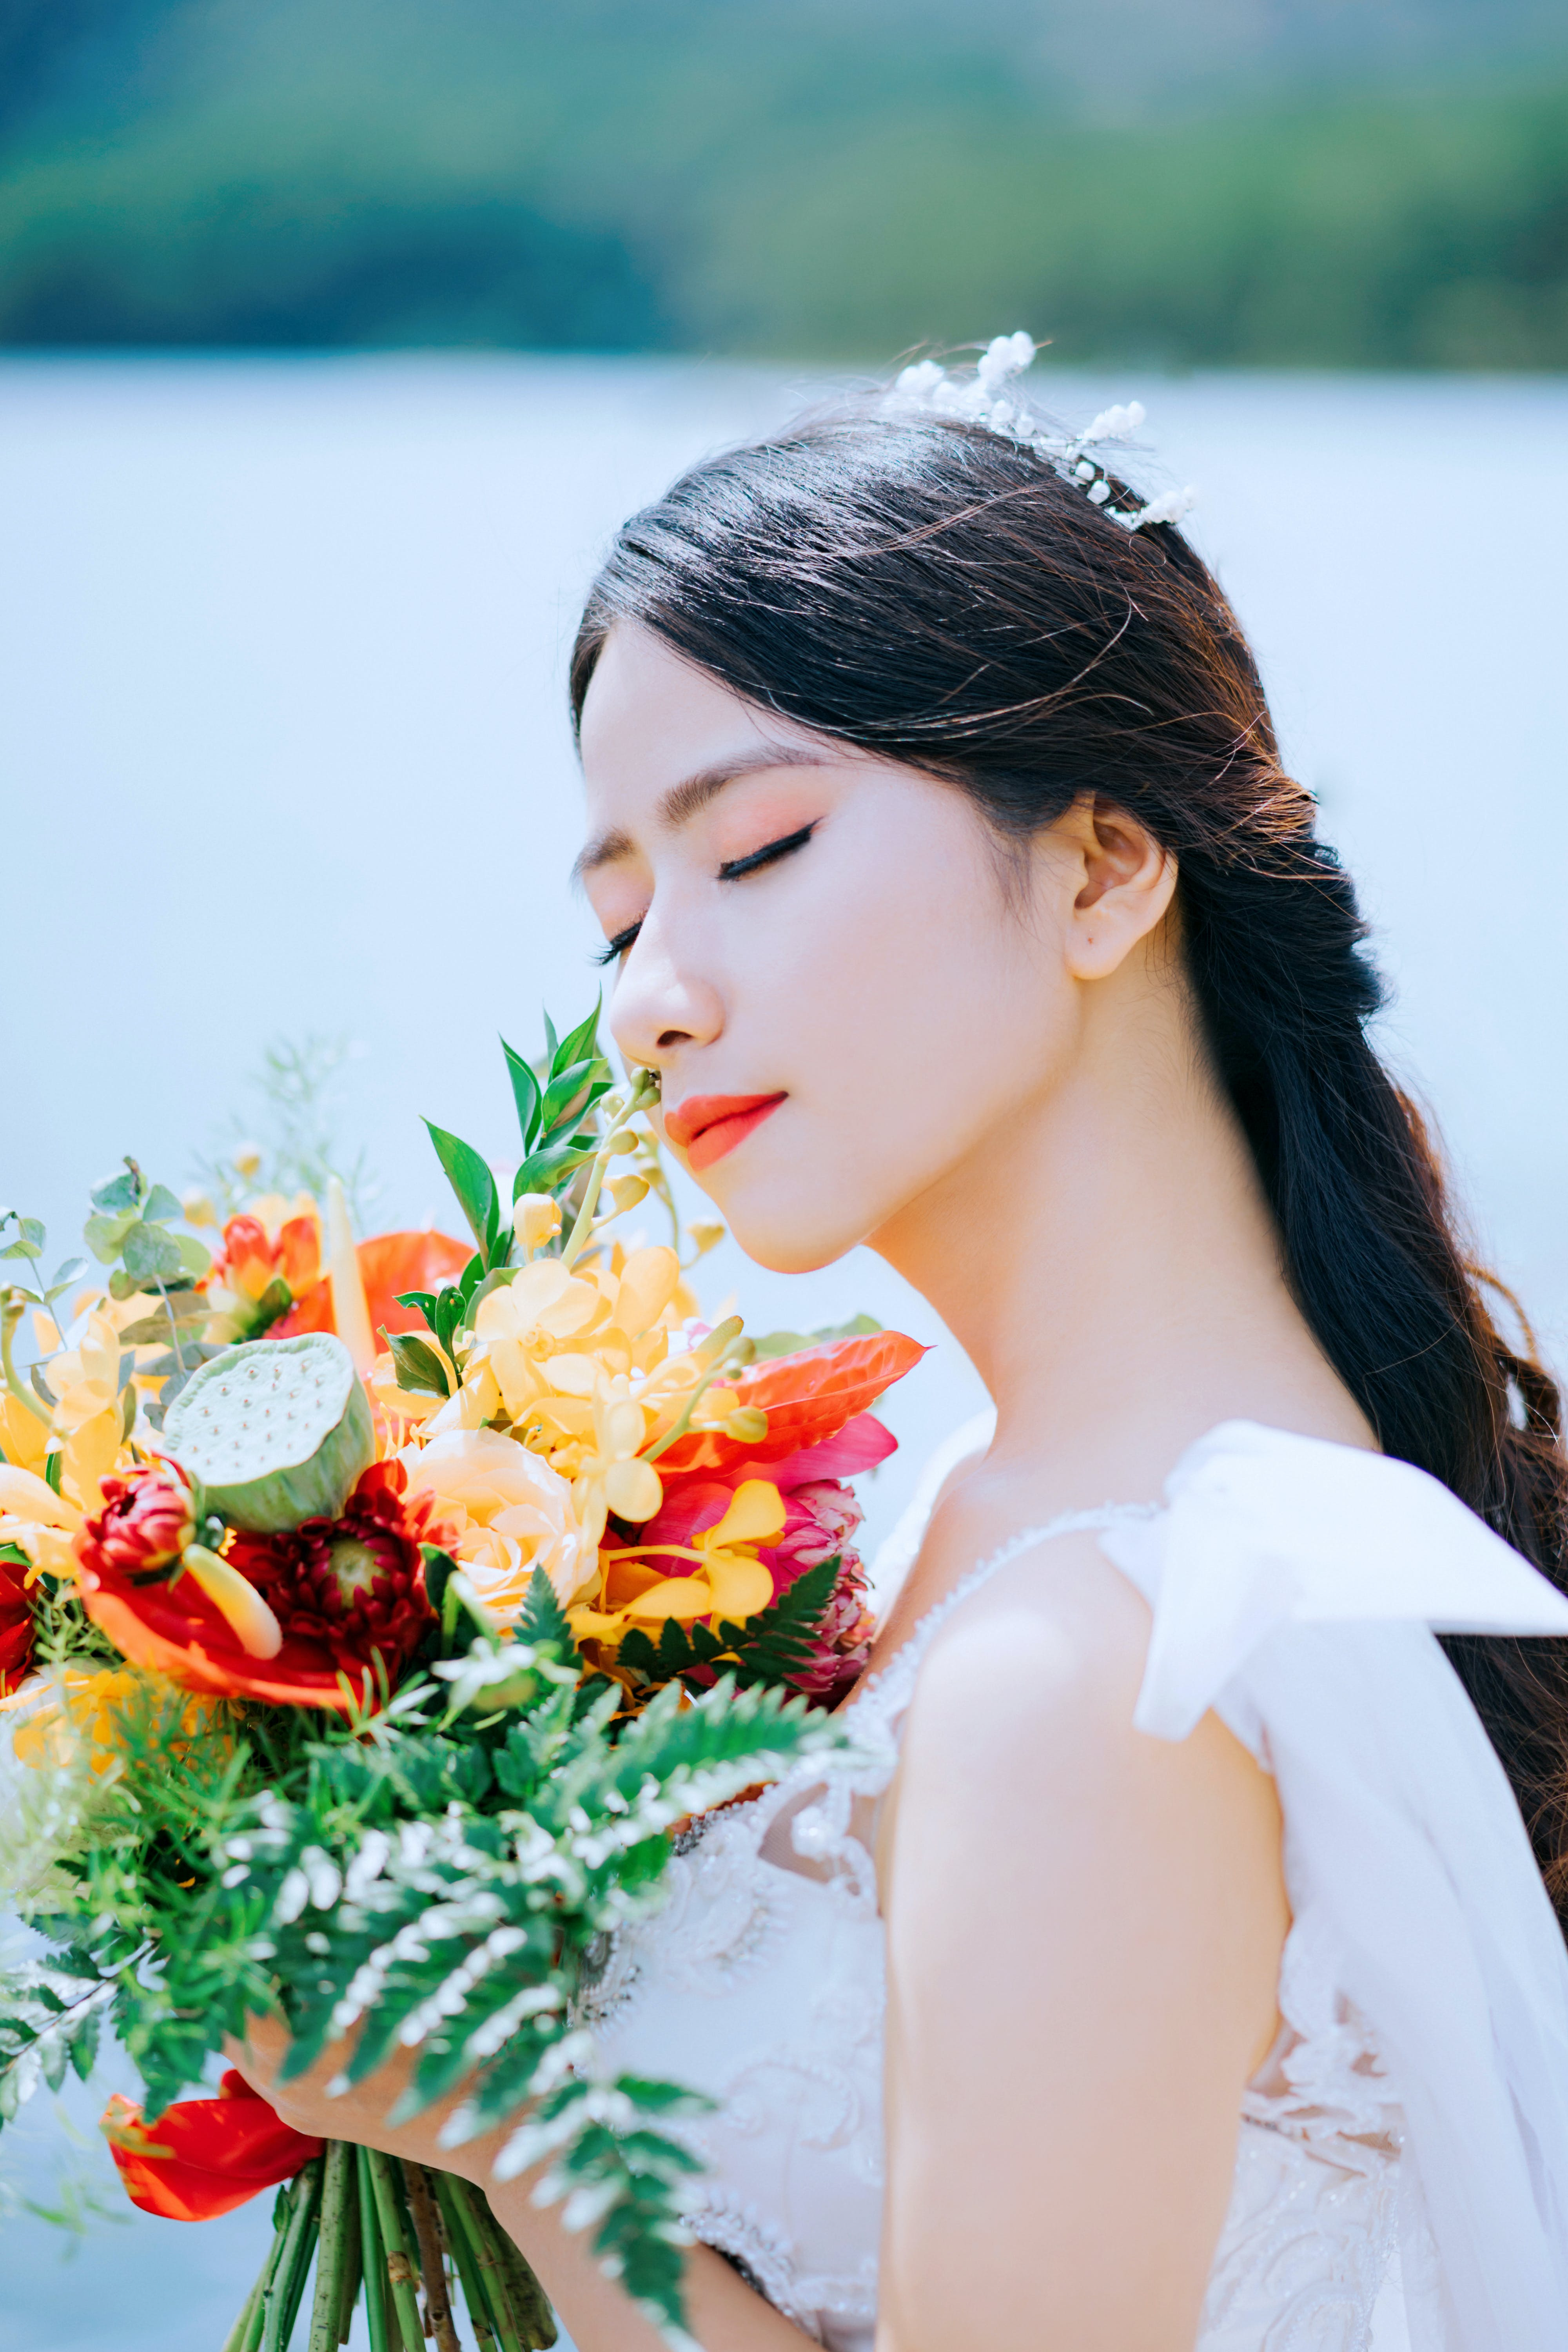 Close-Up Photo of Woman Holding Bouquet